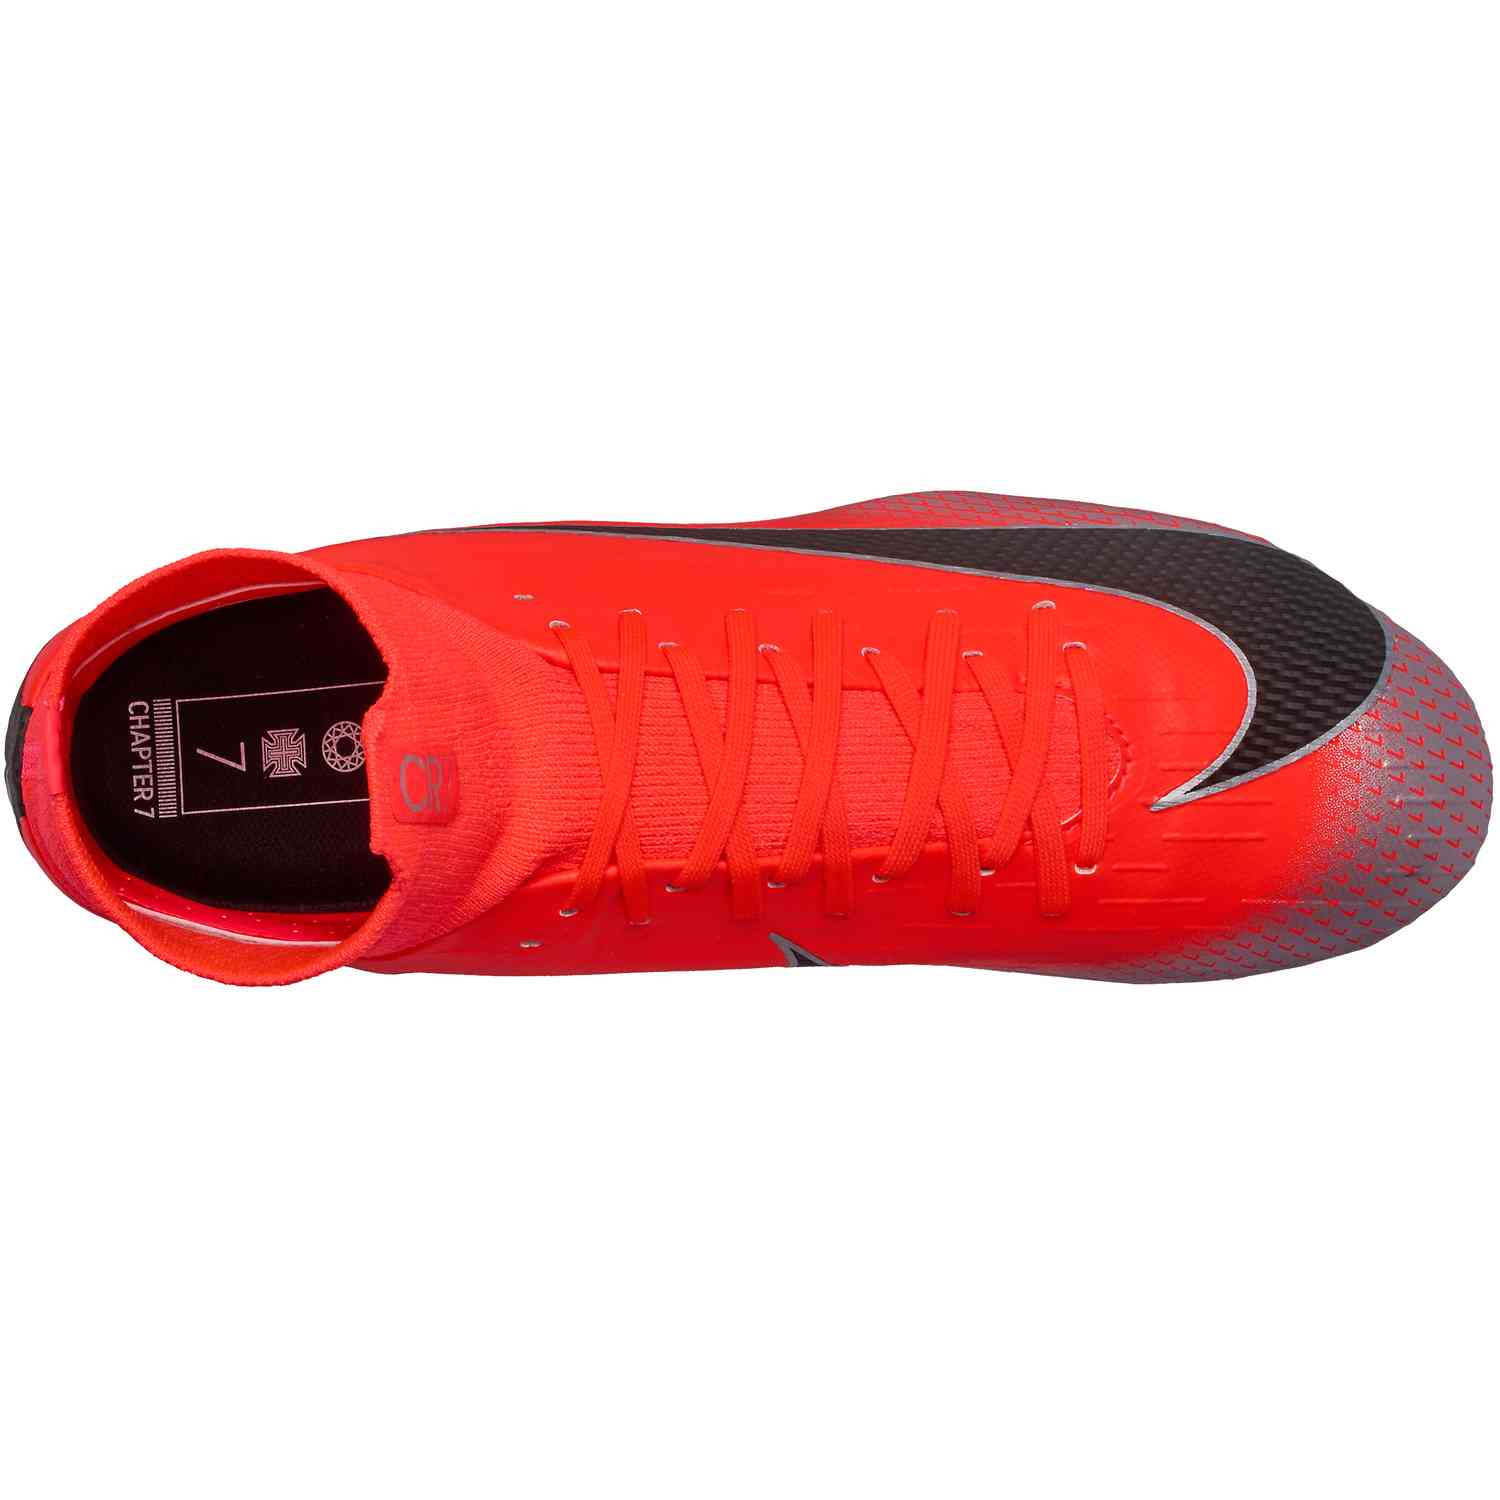 5f5183c0c41 Nike CR7 Superfly 6 Pro - The Final Chapter - SoccerPro